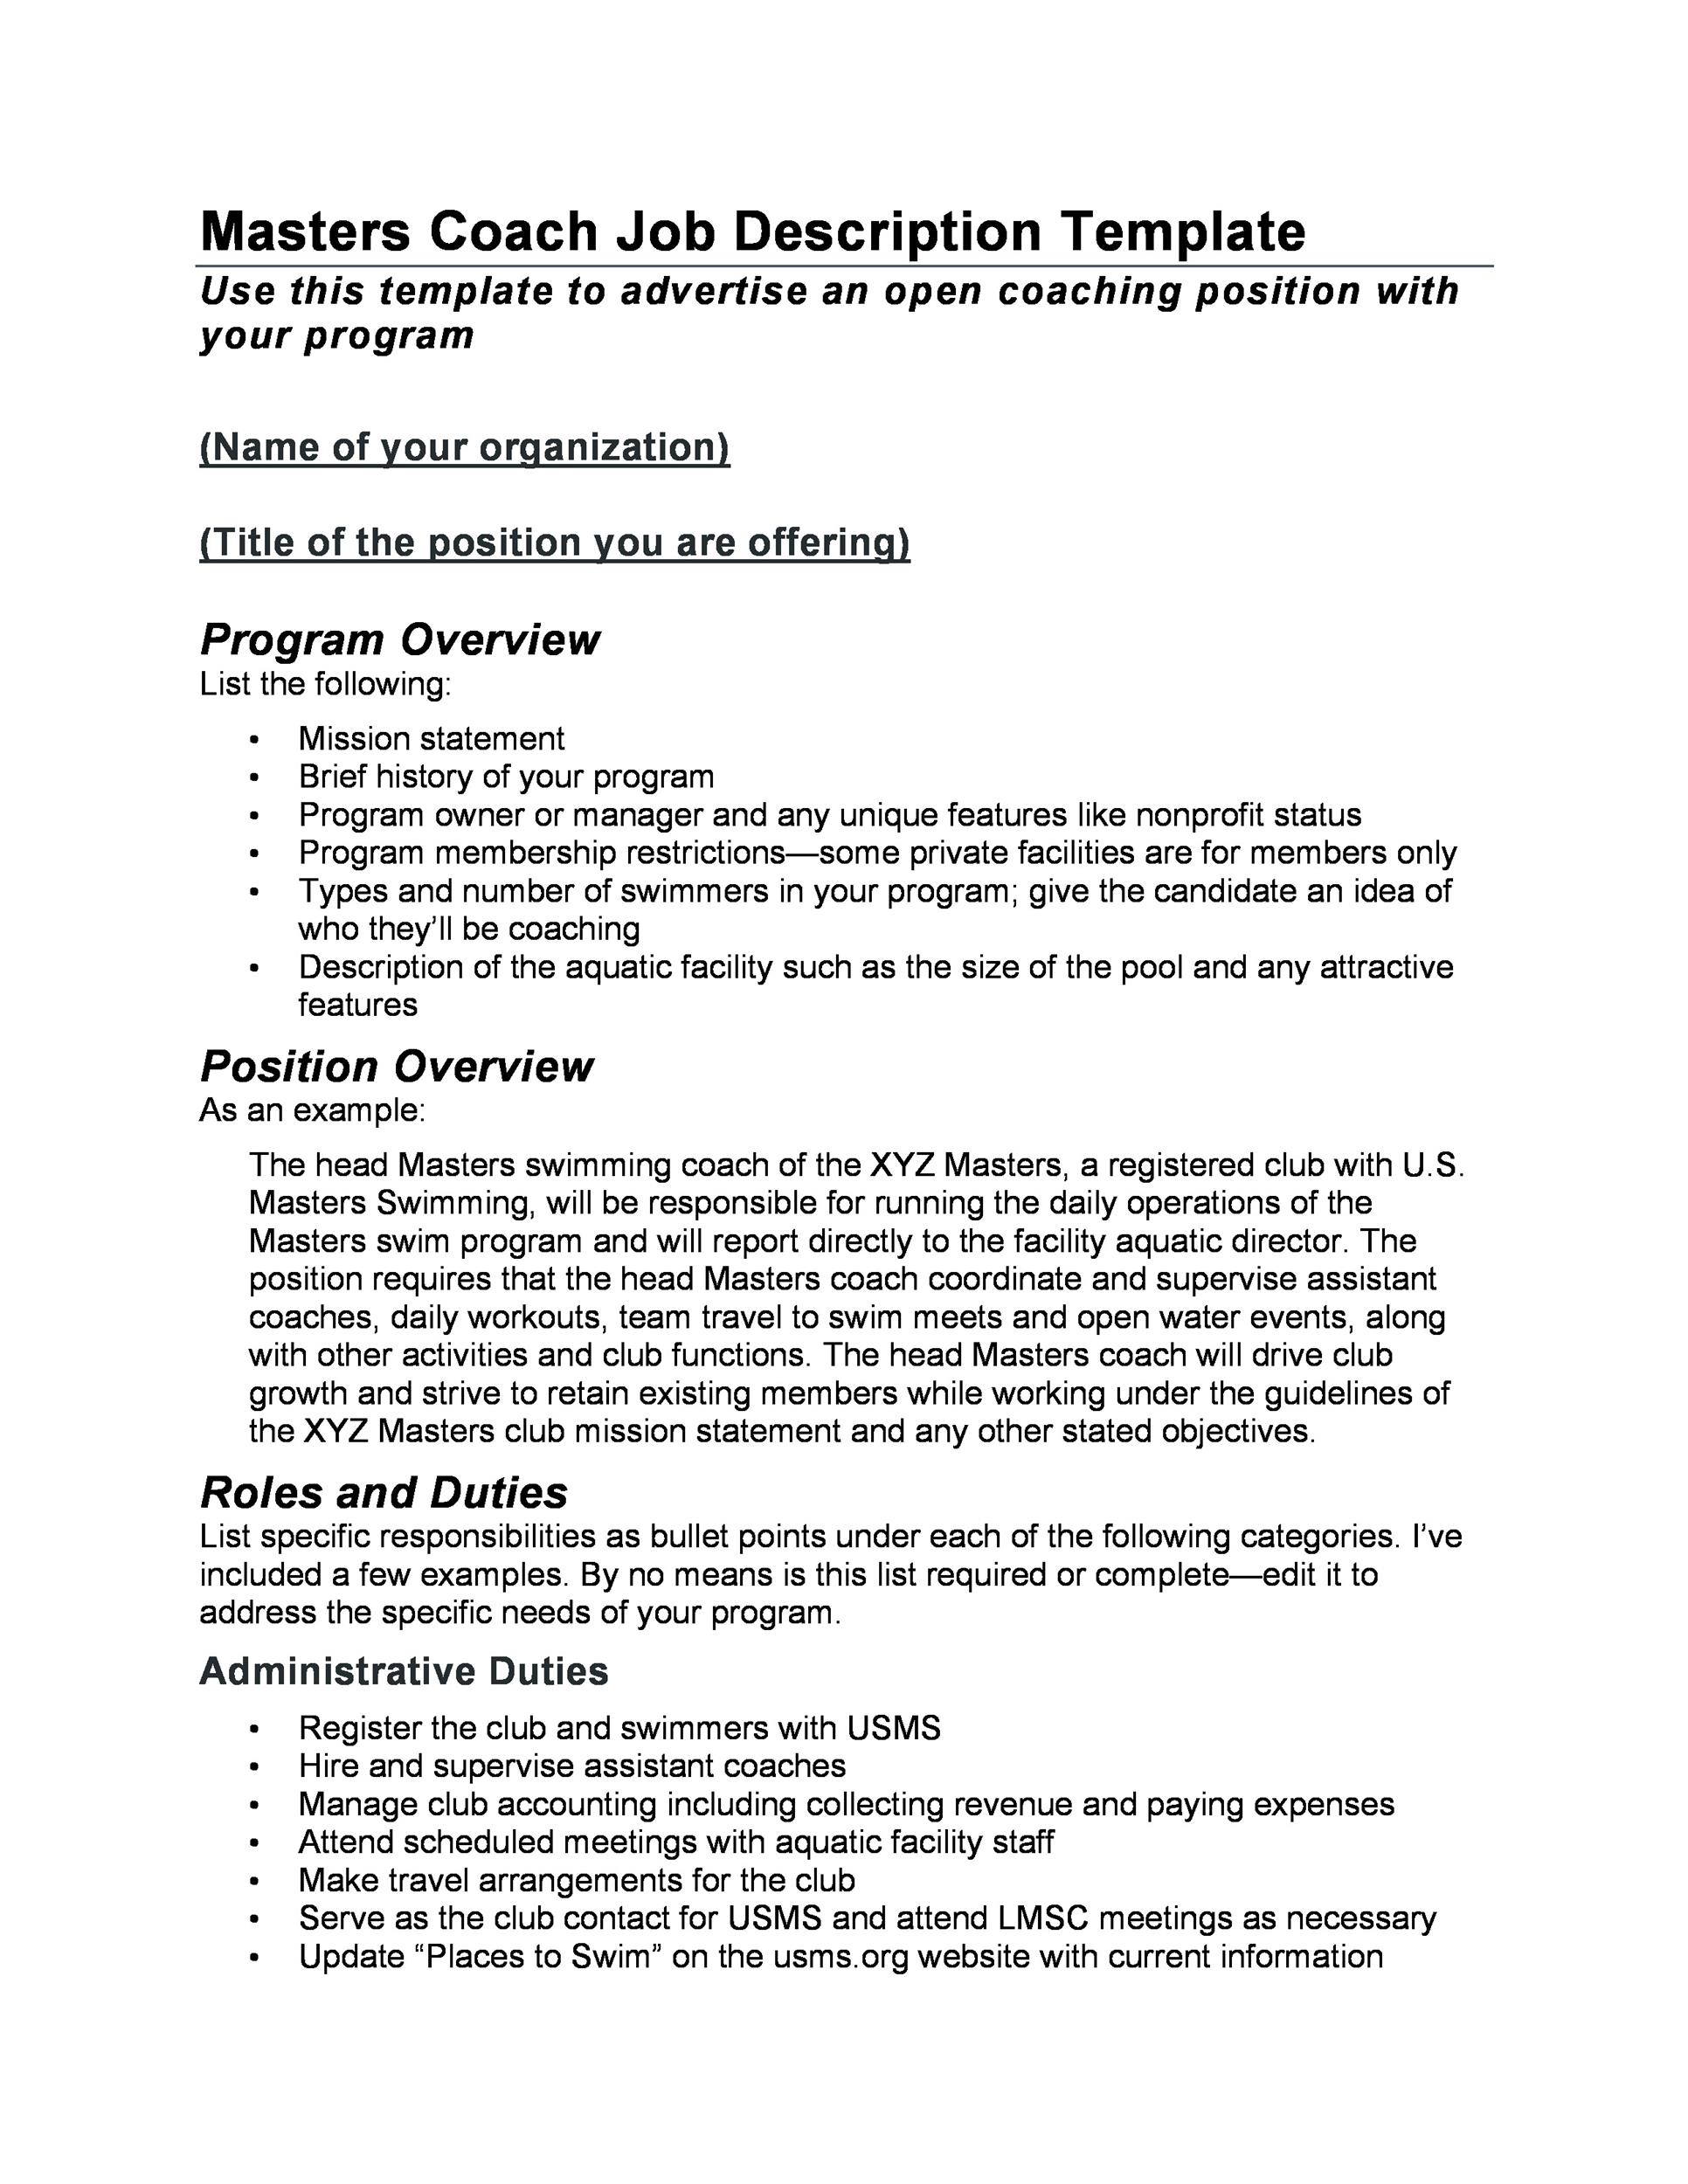 job duties checklist template